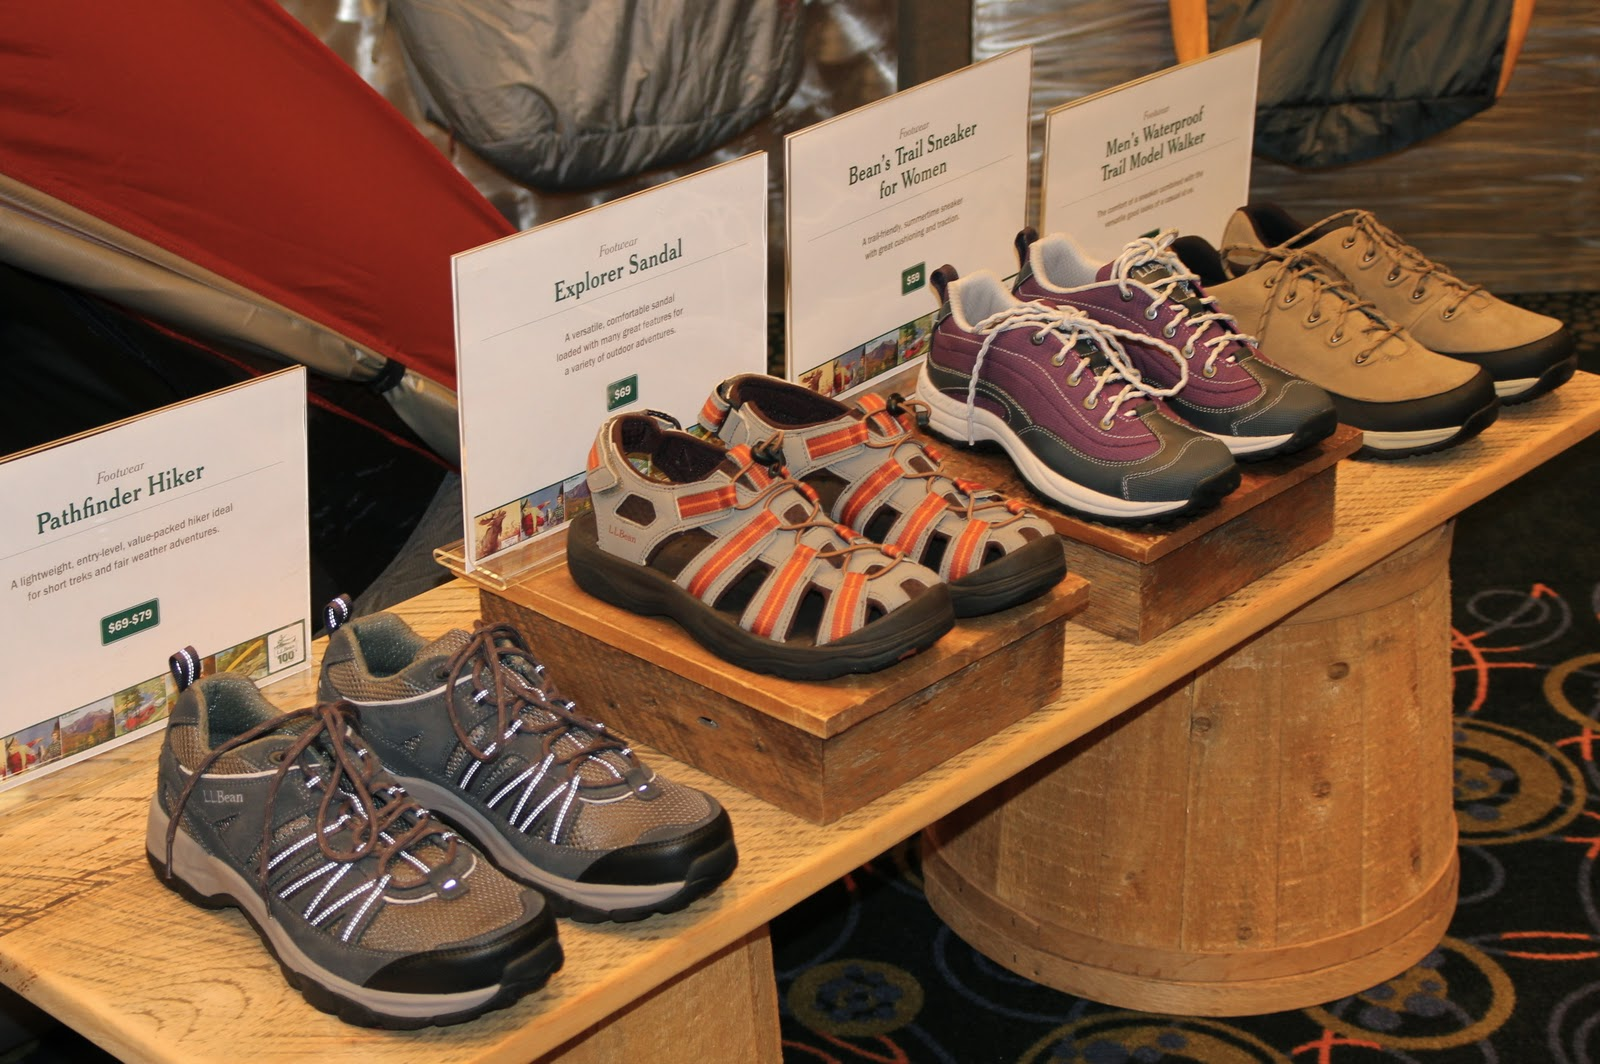 ... and supportiveu003d-Pathfinder Hiker $69-$79 Explorer Sandal $69 Trail Sneaker $59 womenu0027s...Waterproof Trail Model Walker $99. INFO L.L. BEAN. & LYRA MAG.: L.L. BEAN™ 100th ANNIVERSARY COLLECTION